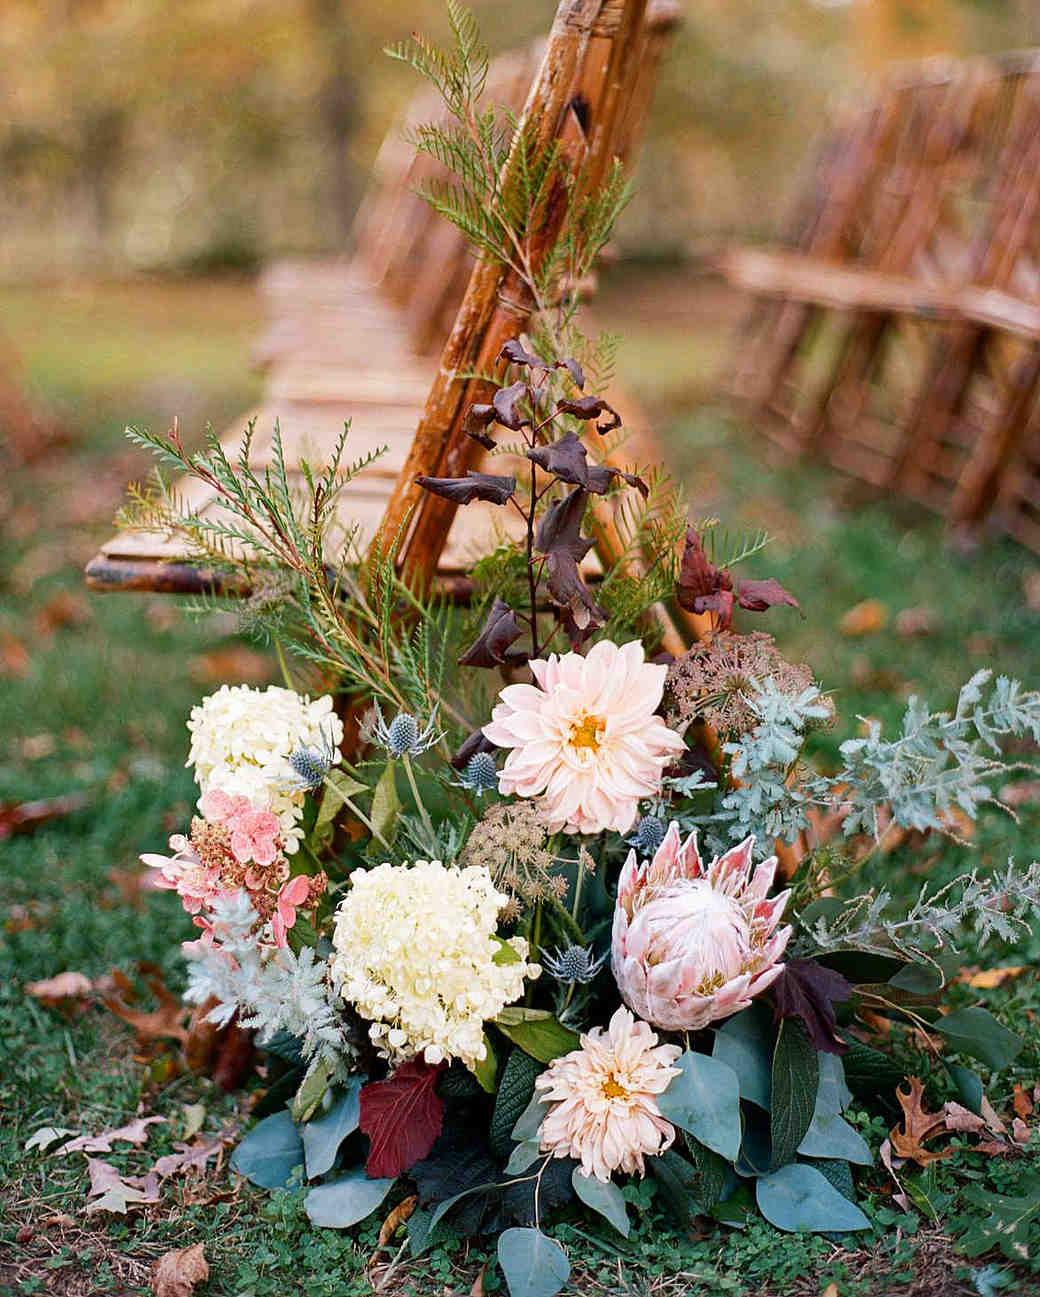 meg nick wedding ceremony flowers